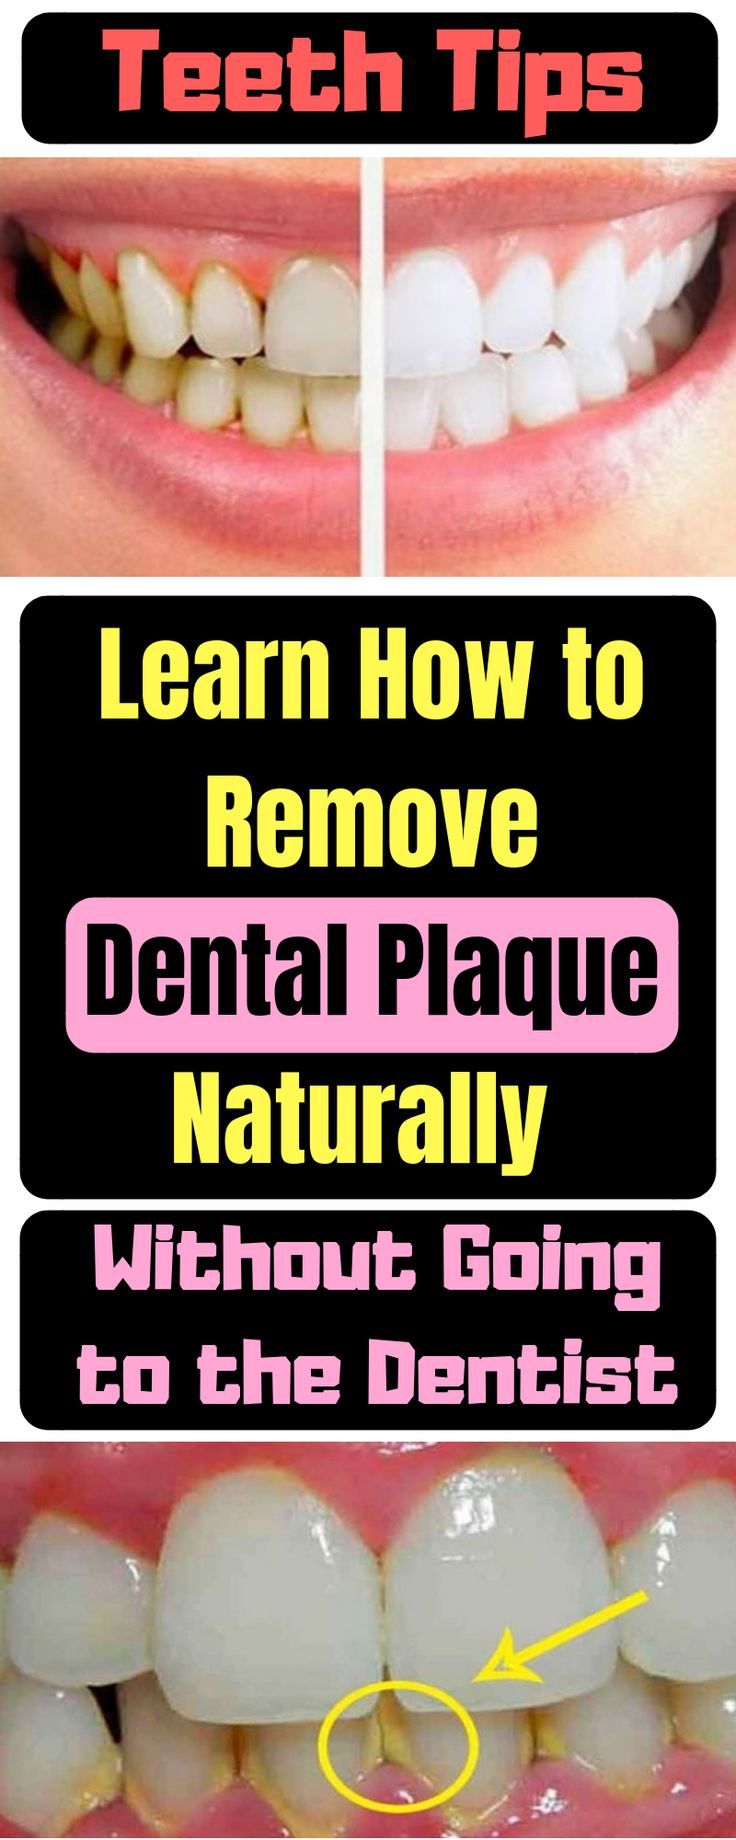 Learn How to Remove Dental Plaque Naturally without Going